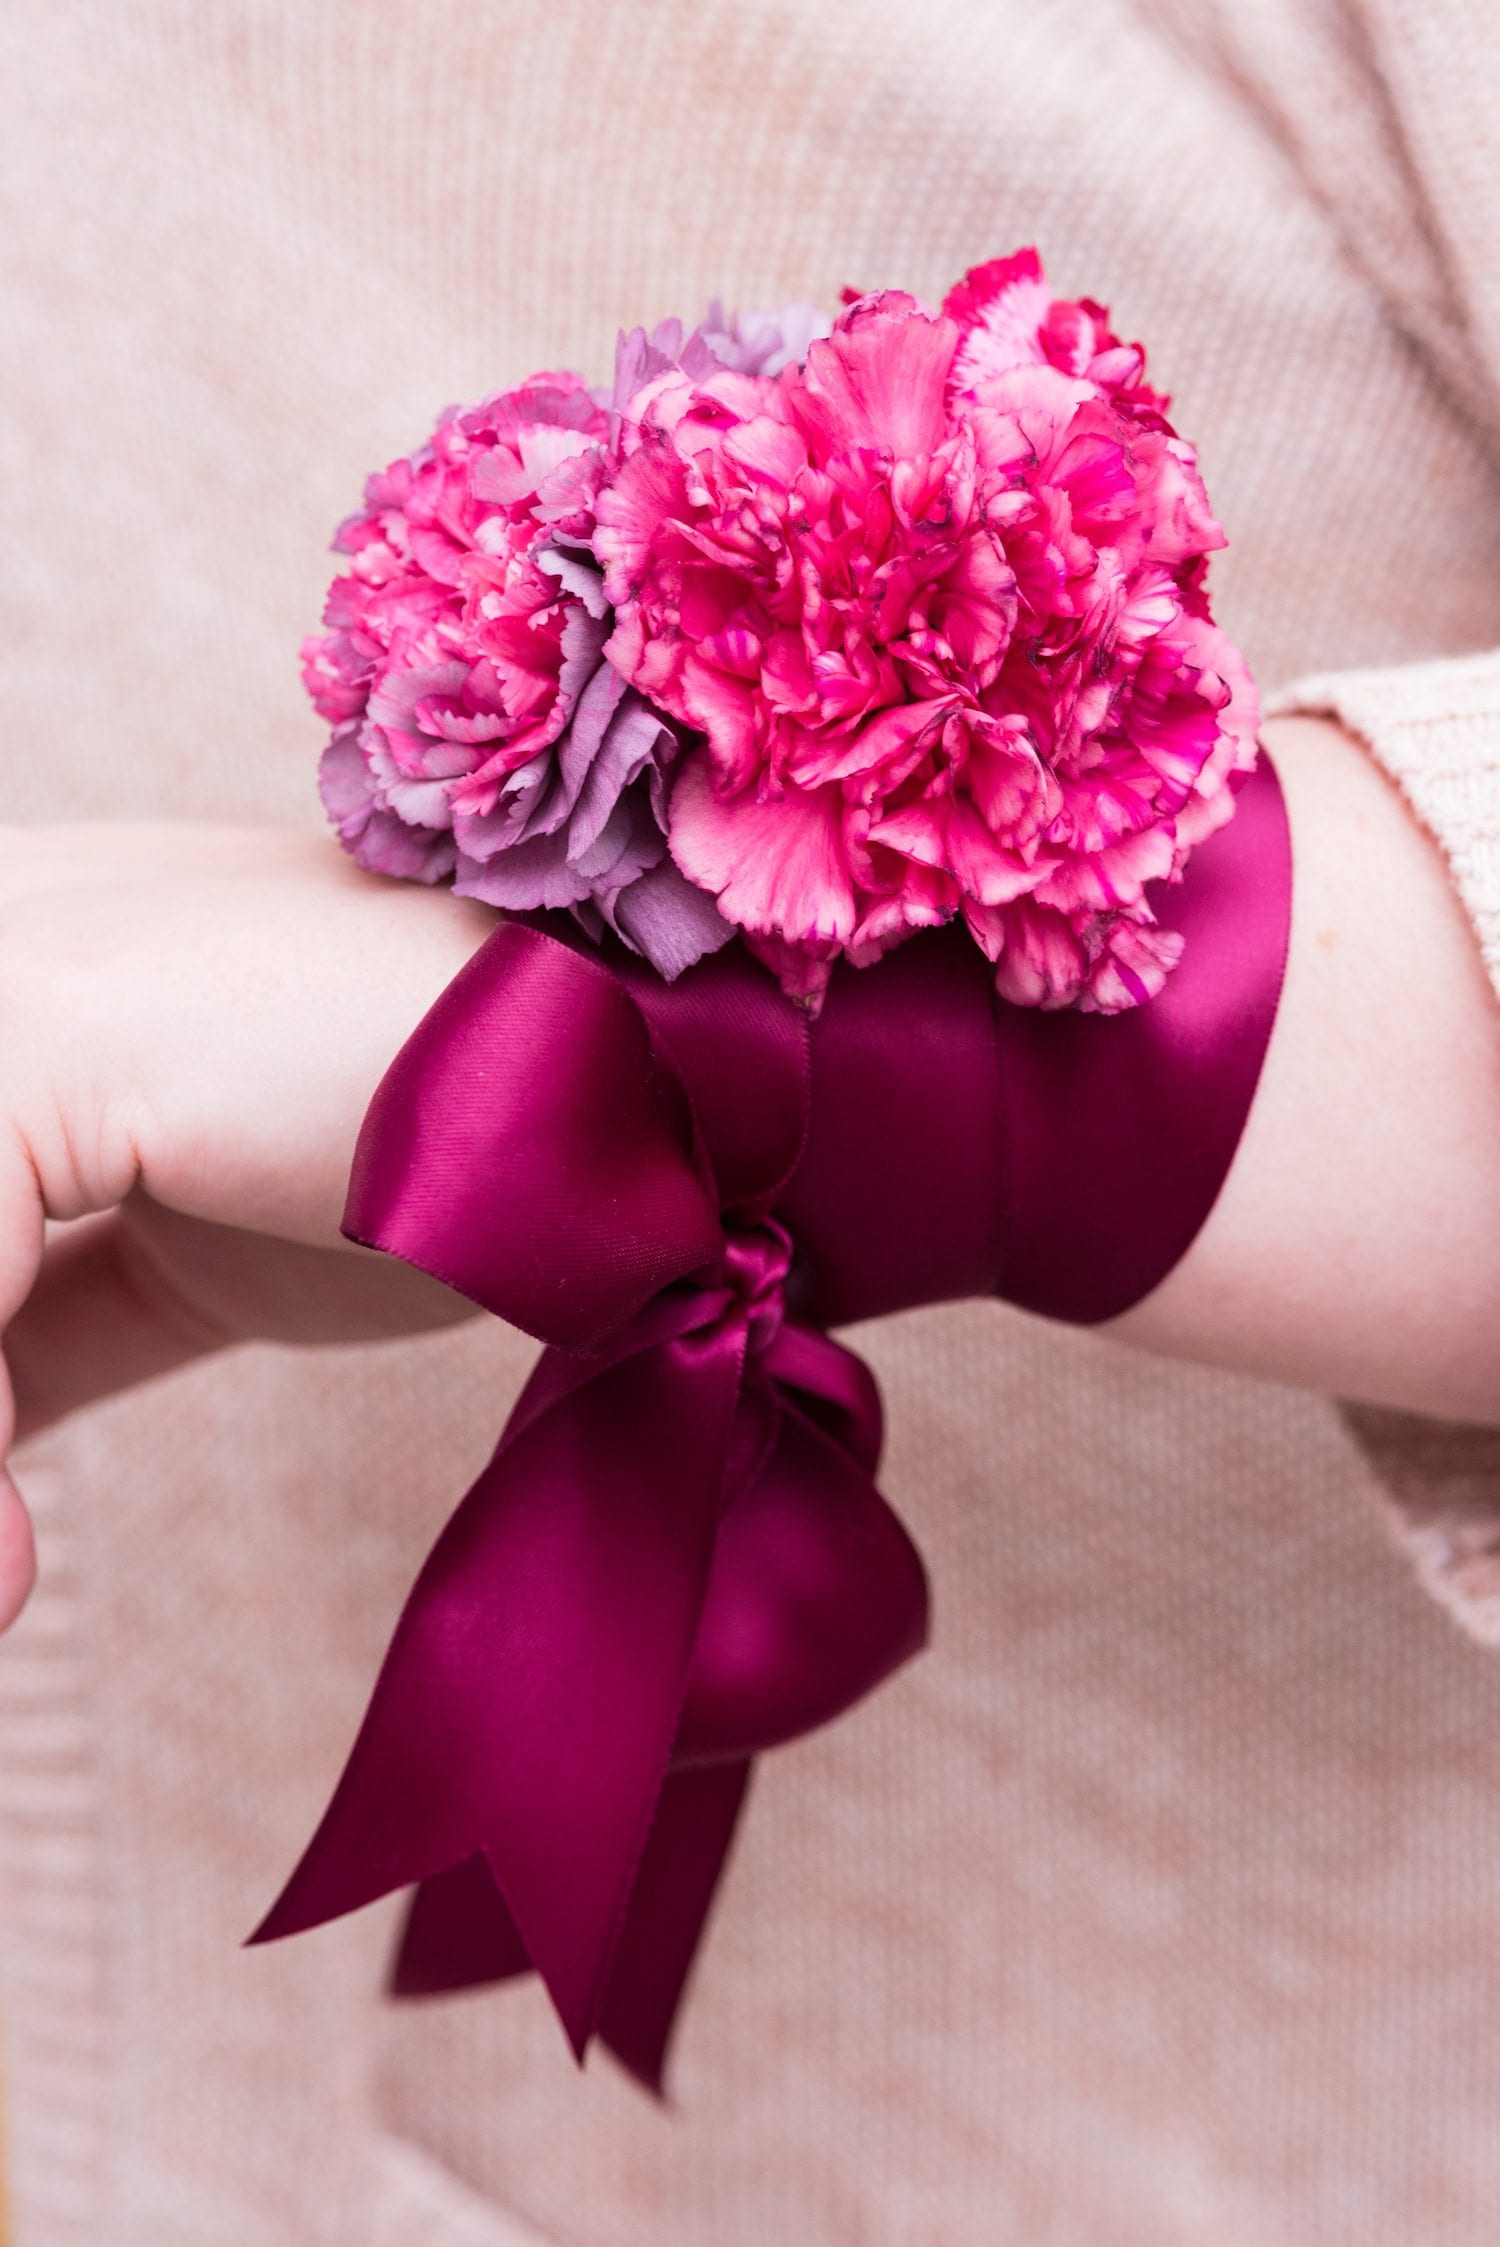 Make Mom feel like a queen with the prettiest DIY floral wrist corsages! Get the tutorial plus loads of entertaining tips and party ideas from @cydconverse